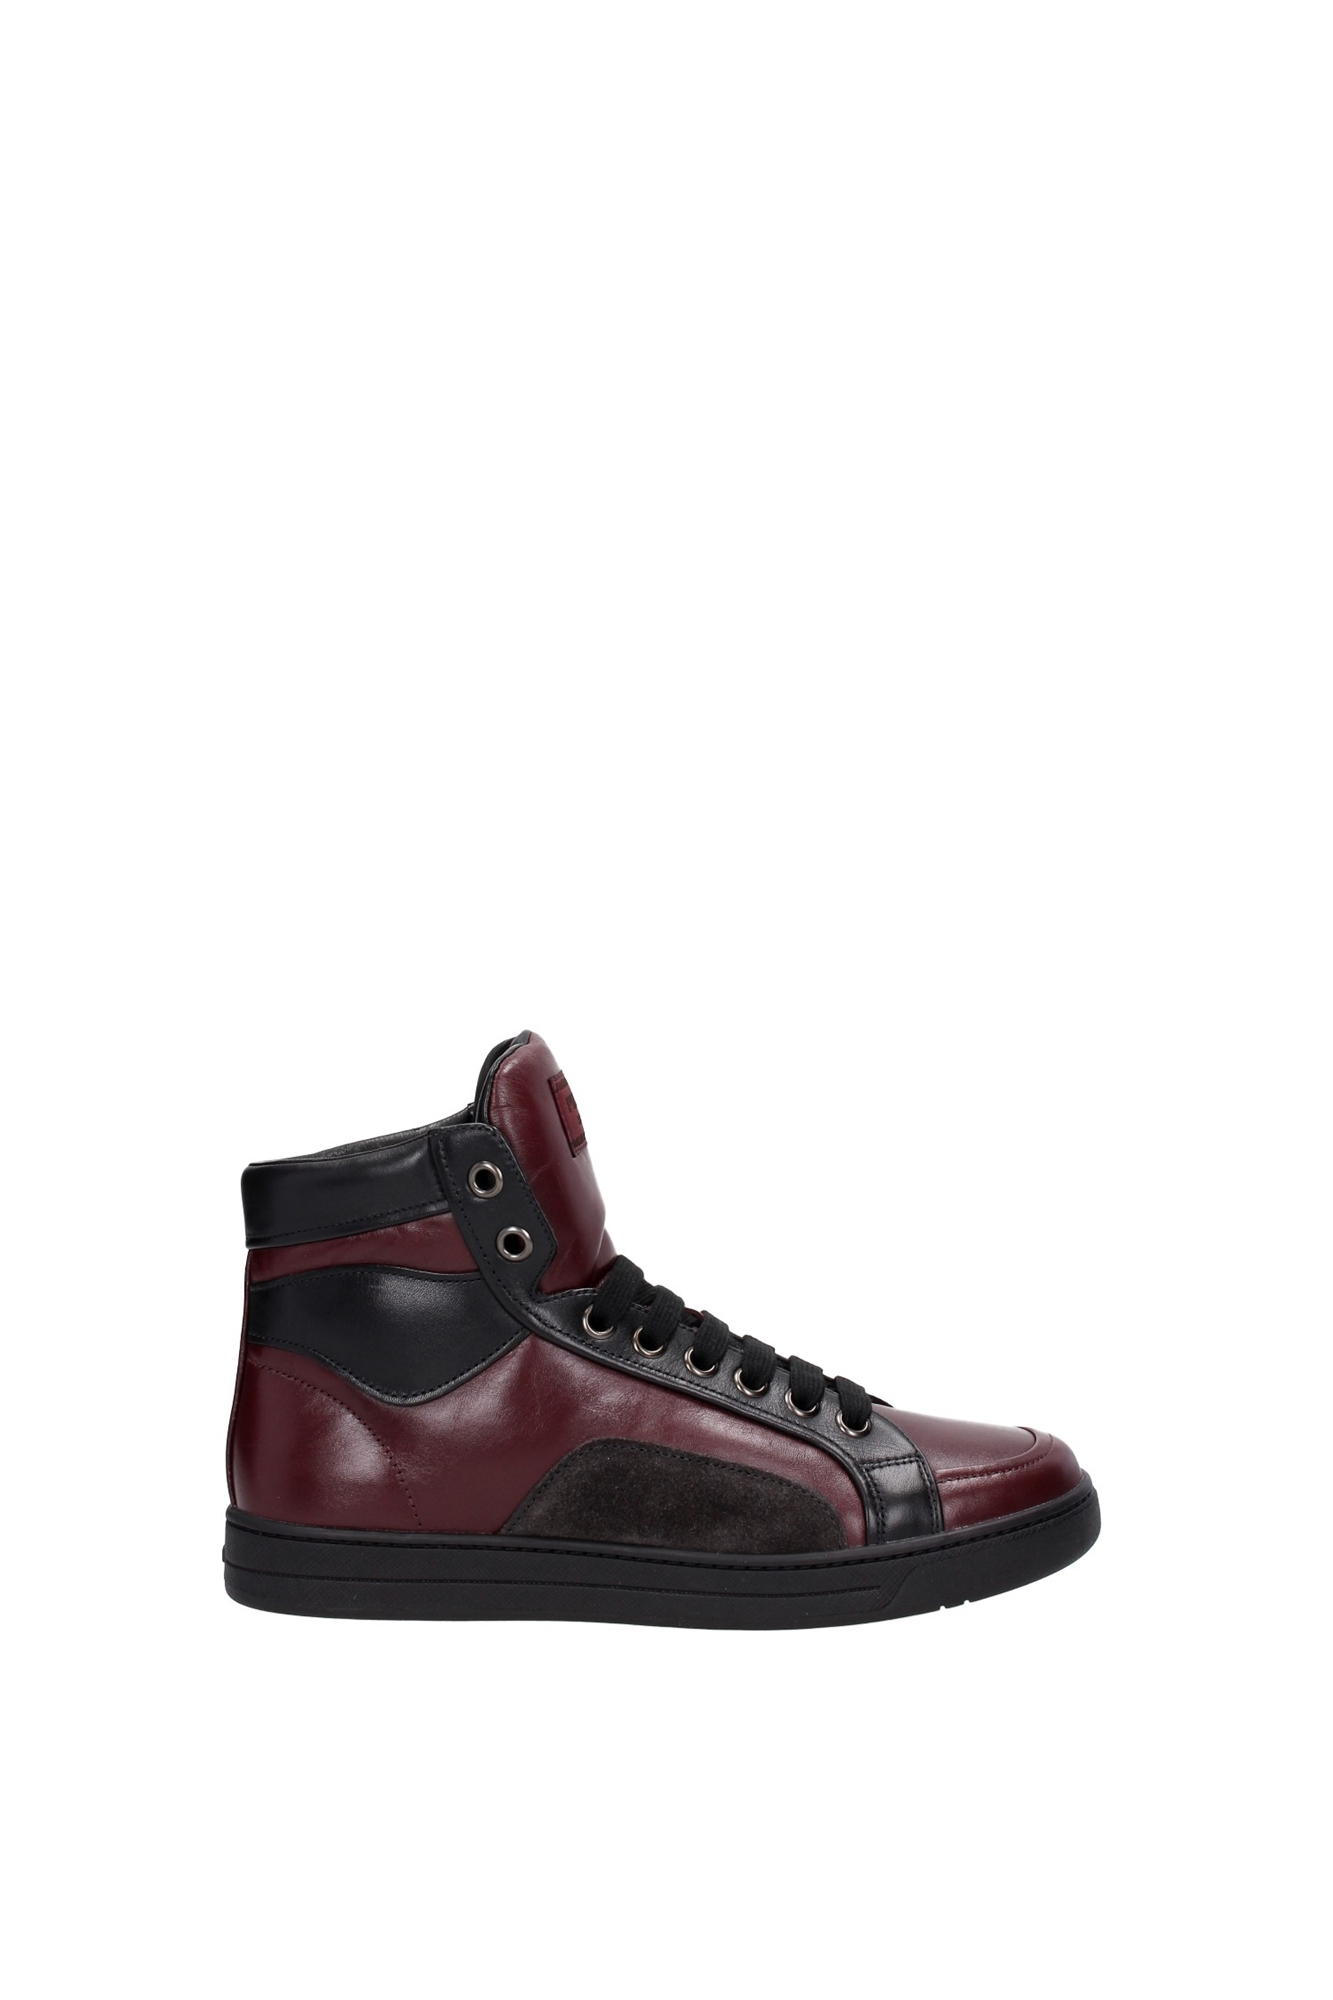 sneakers prada herren leder rot 4t2724bordeauxnero ebay. Black Bedroom Furniture Sets. Home Design Ideas